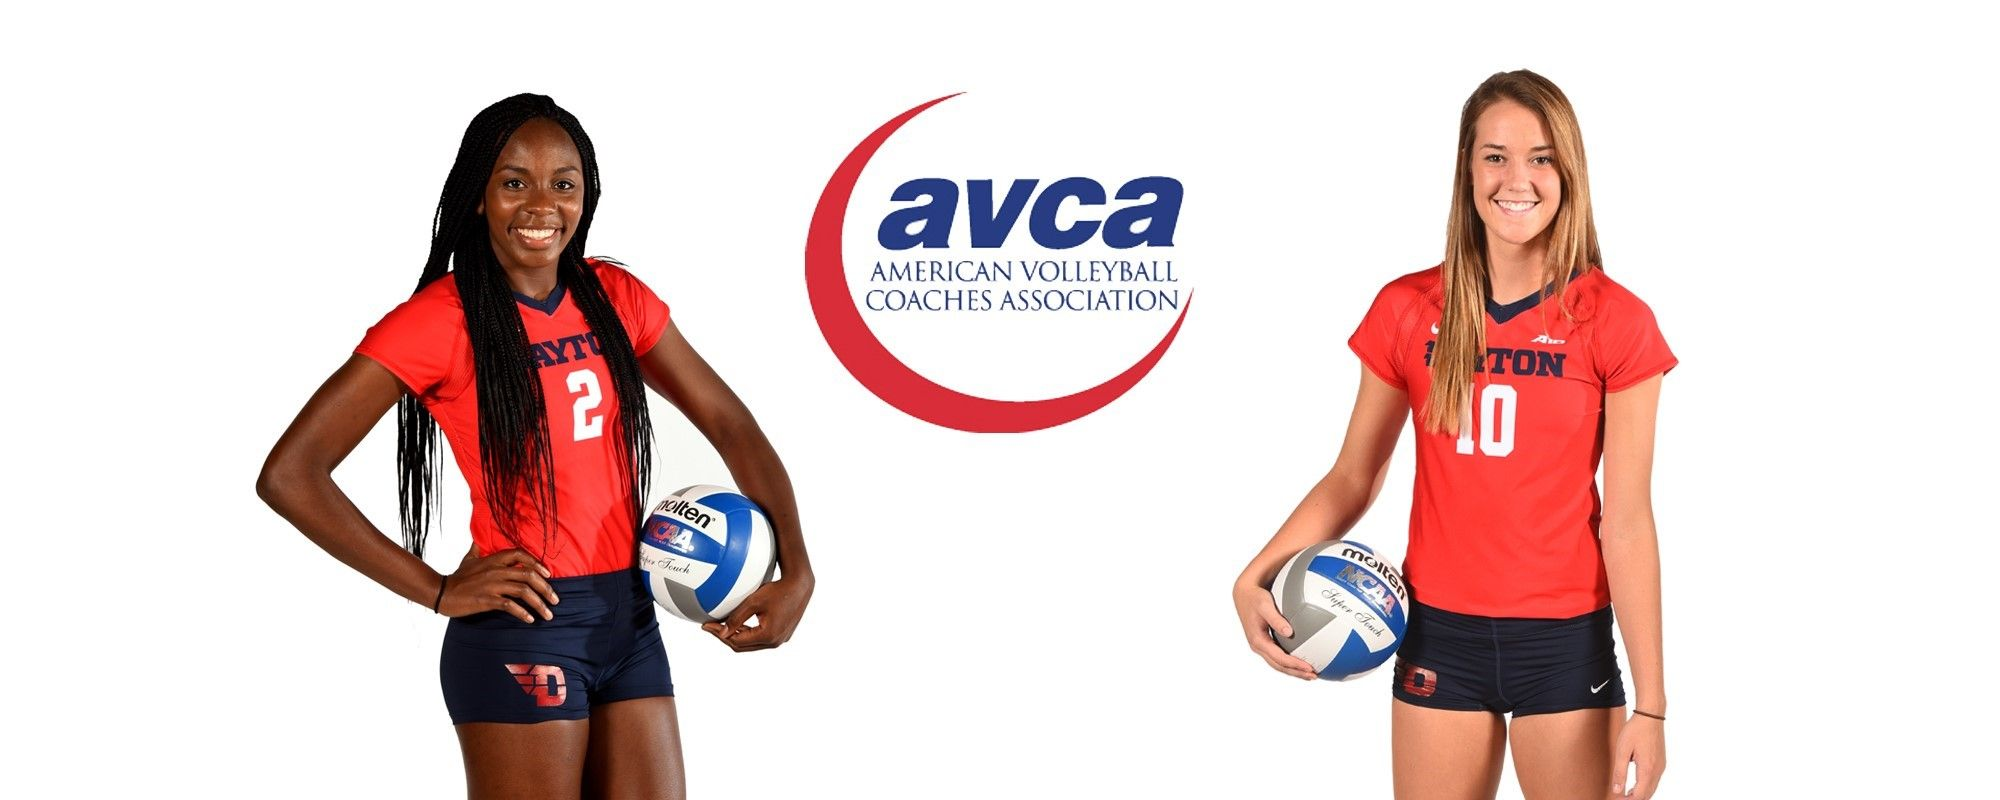 Erhahon Turner Recognized On Avca All Region Rosters University Of Dayton Athletics Female Volleyball Players Coaching Volleyball Professional Volleyball Players